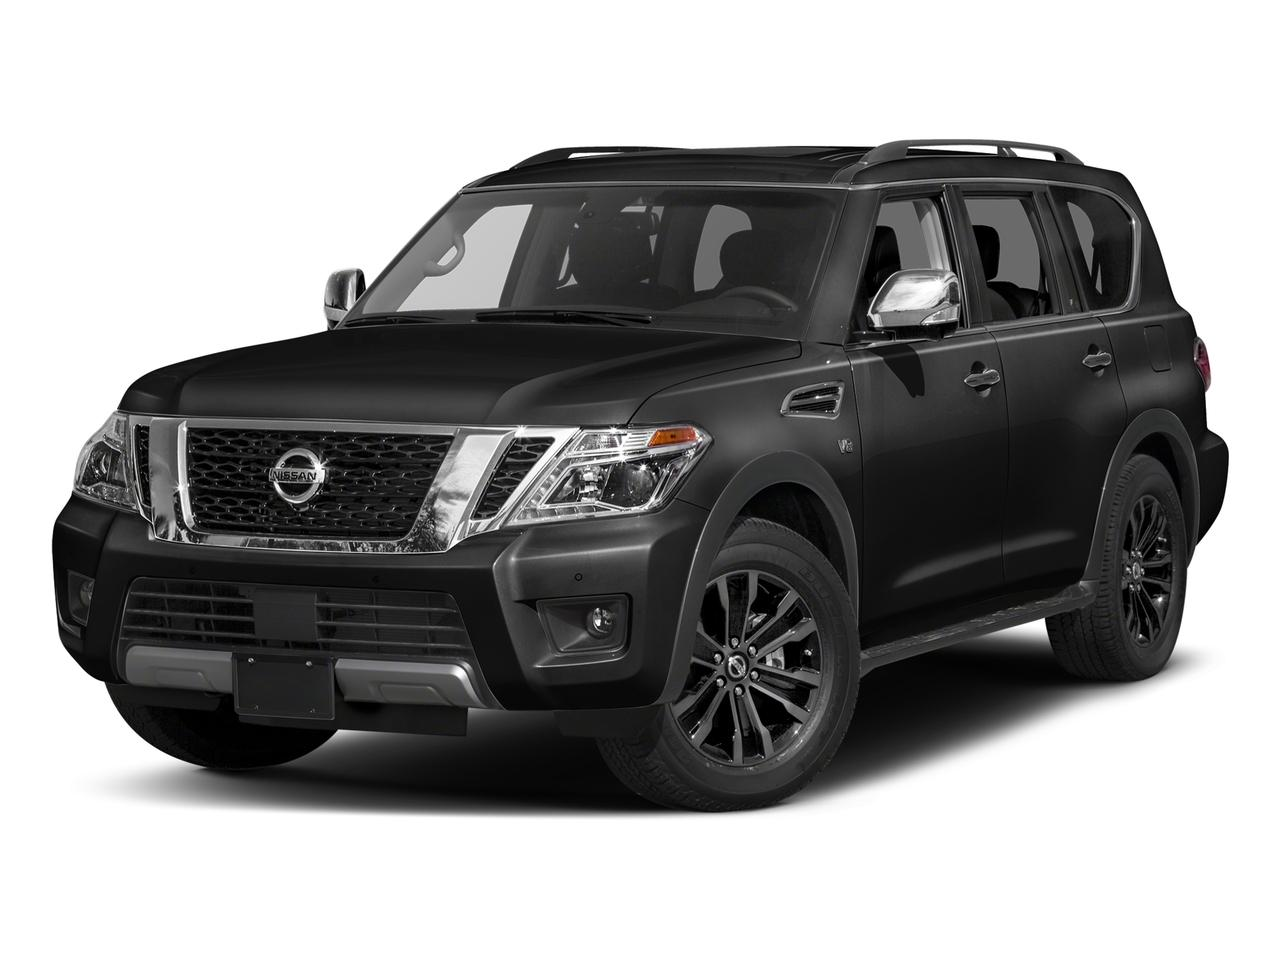 2017 Nissan Armada Vehicle Photo in Shreveport, LA 71105